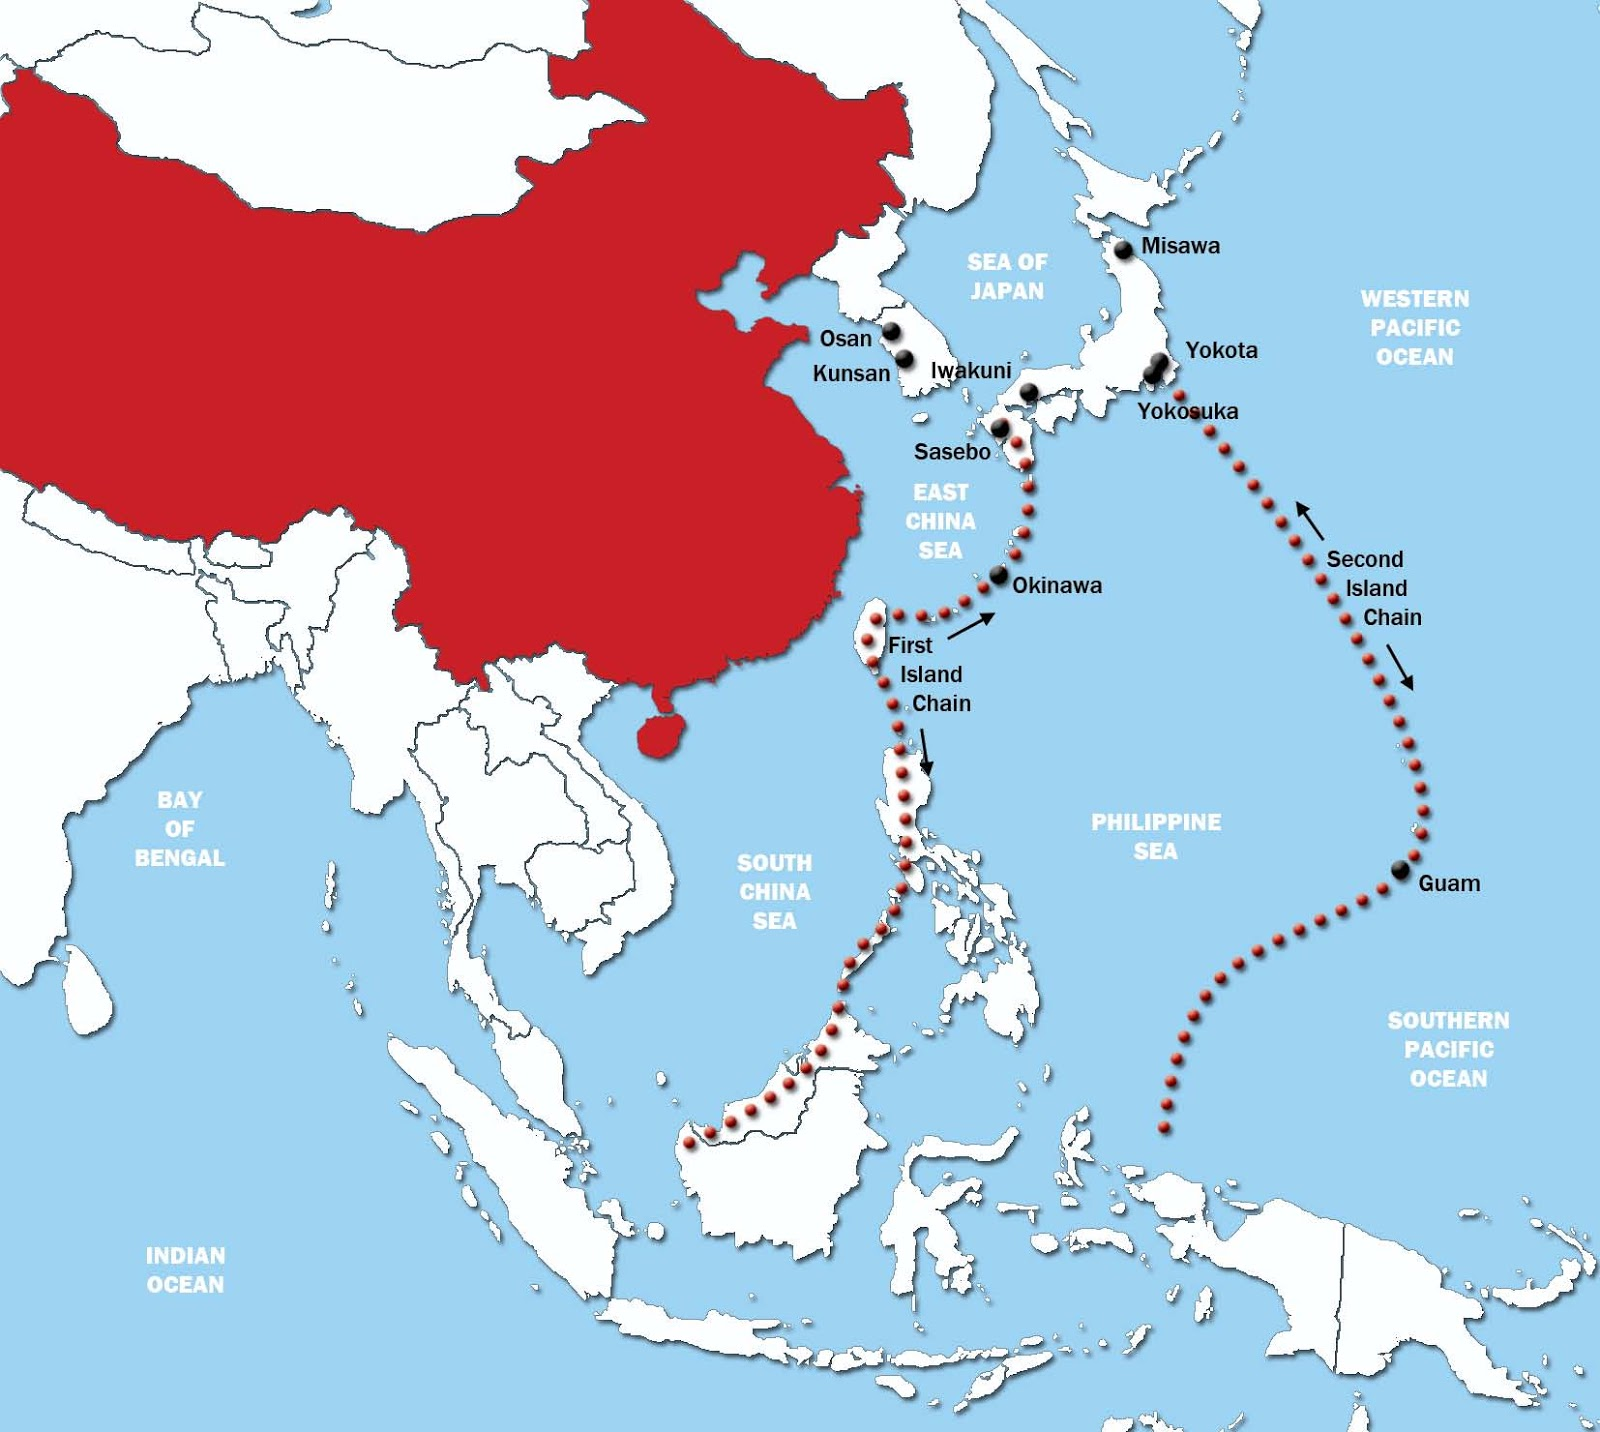 Warm Oolong Tea Americas Pacific Maginot Line Advantage In The - Us And Pacific Countries Maps